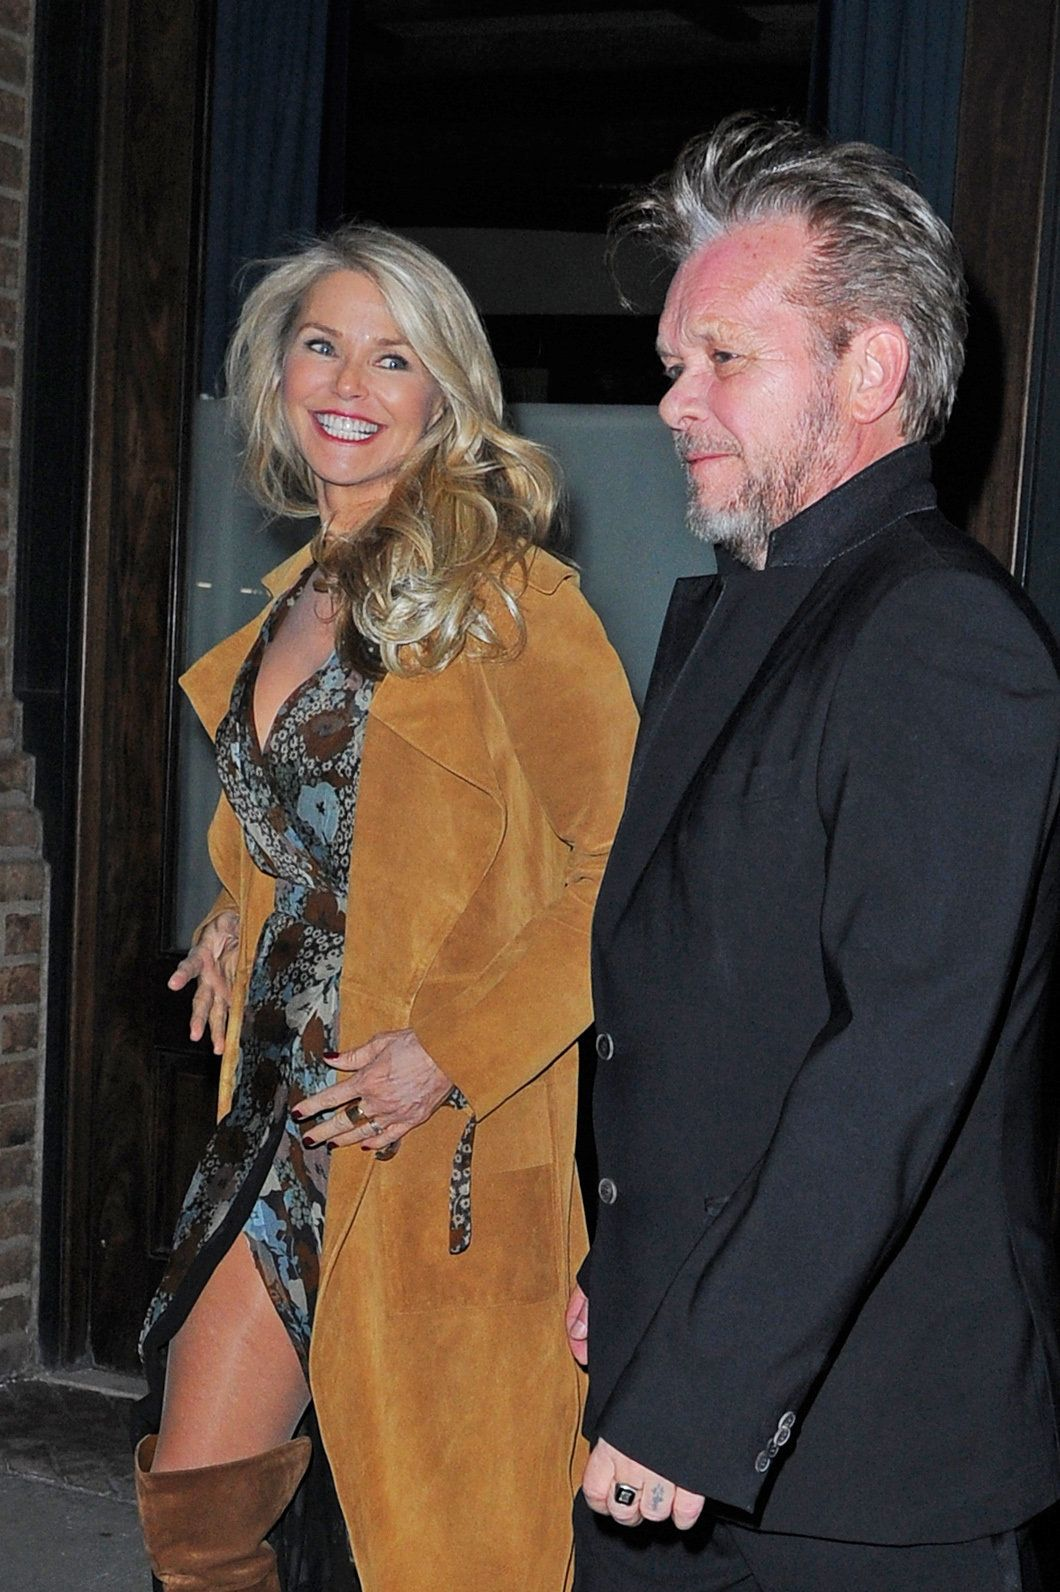 NEW YORK - FEBRUARY 02: Christie Brinkley and John Mellencamp step out of there Tribeca hotel on February 02, 2016 in New York, New York.  (Photo by Josiah Kamau/BuzzFoto via Getty Images)